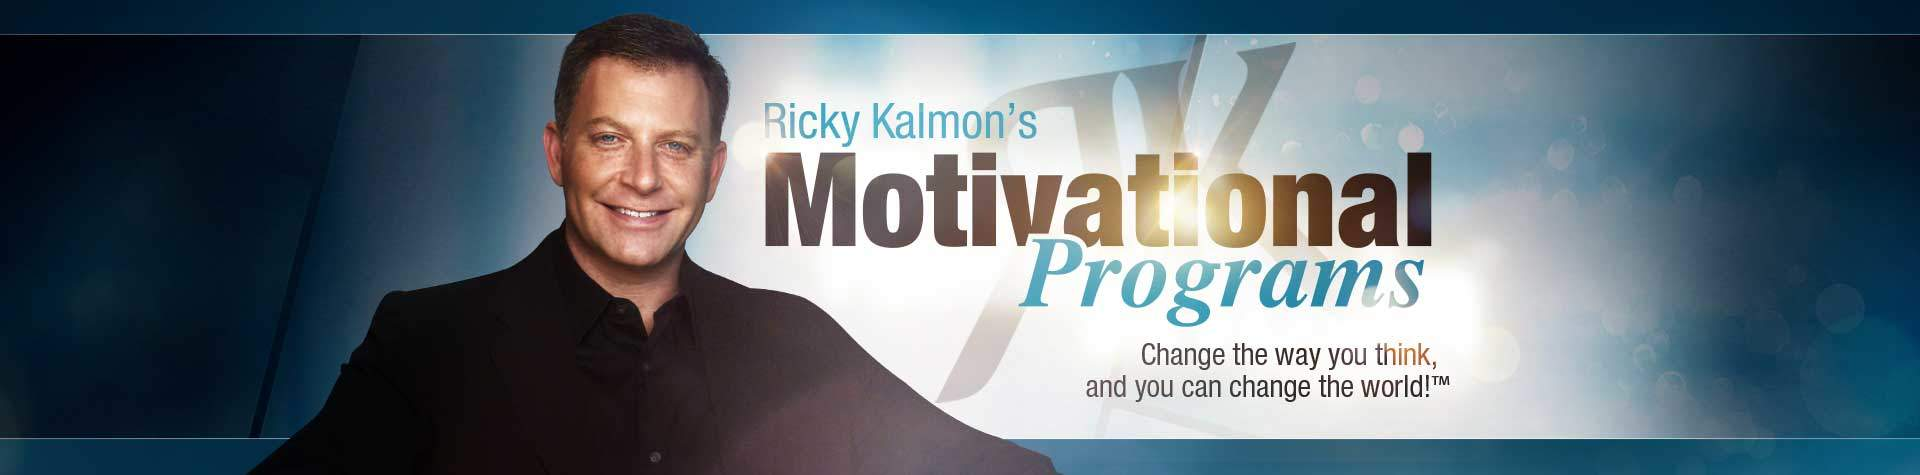 Ricky Kalmon Motivational Programs